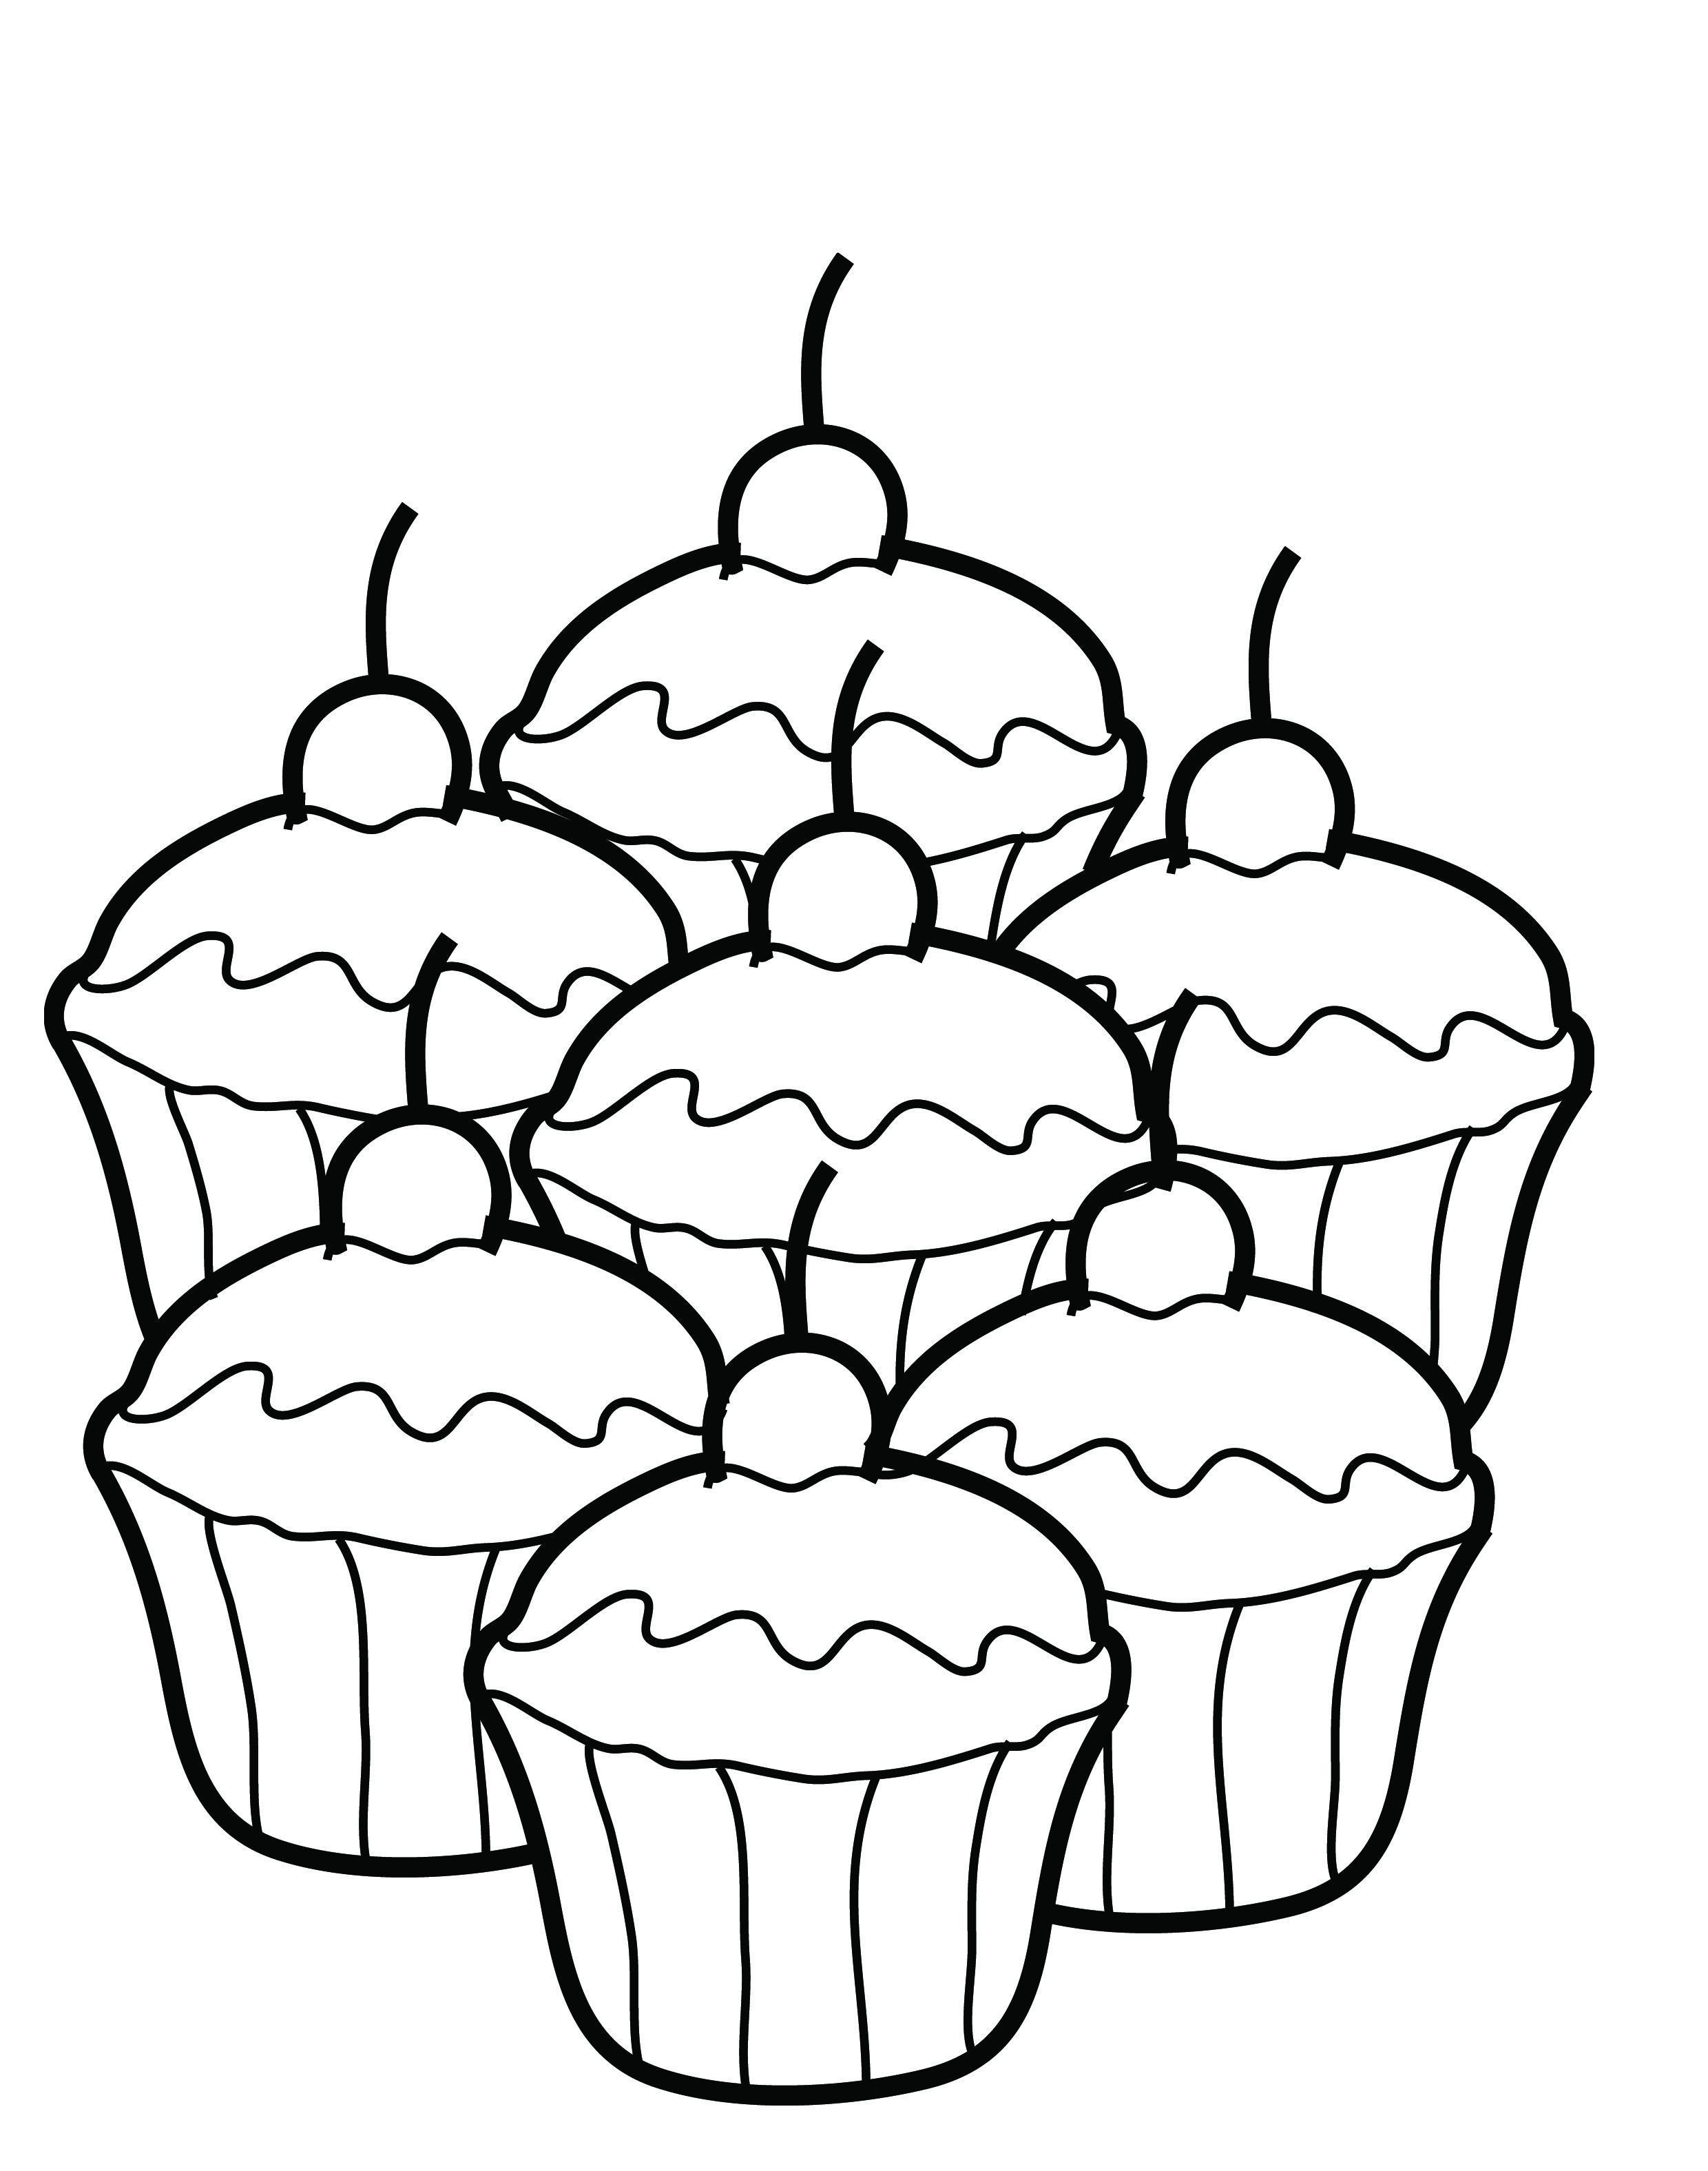 cupcake coloring pages for kids - Printable Kid Coloring Pages